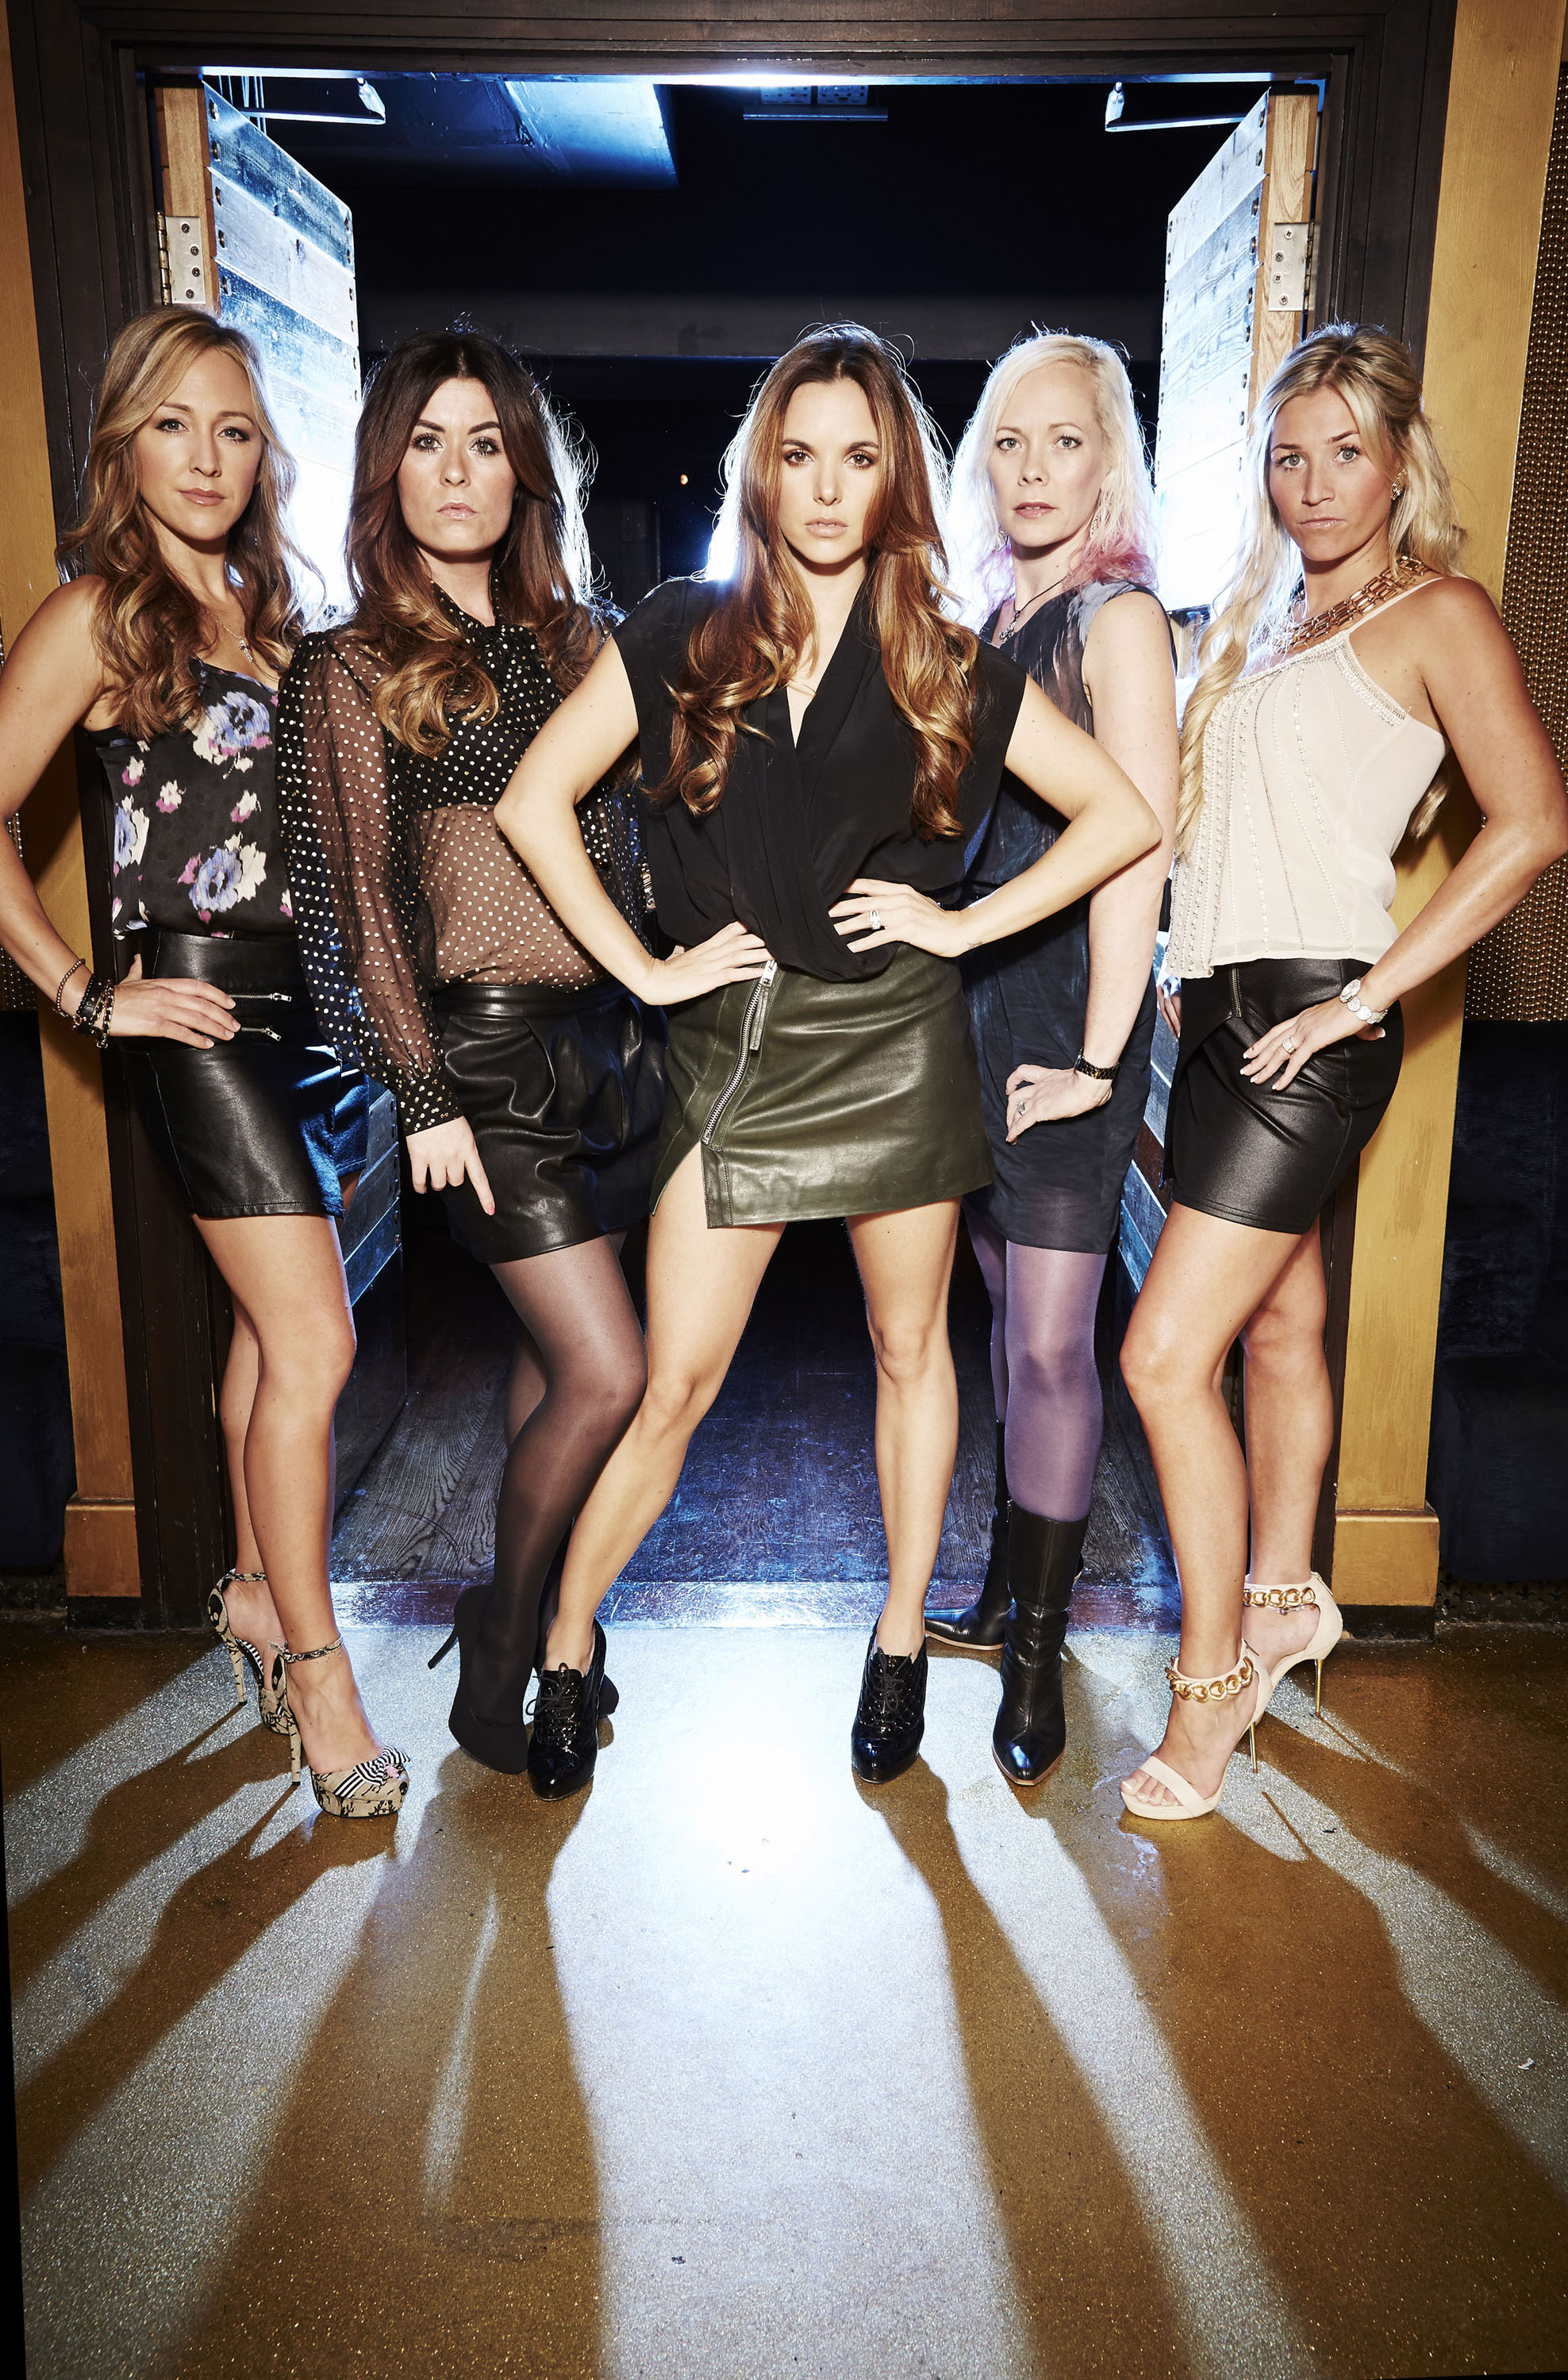 The Big Reunion 2: It's sad to see how unhappy Girl Thing were 14 years ago